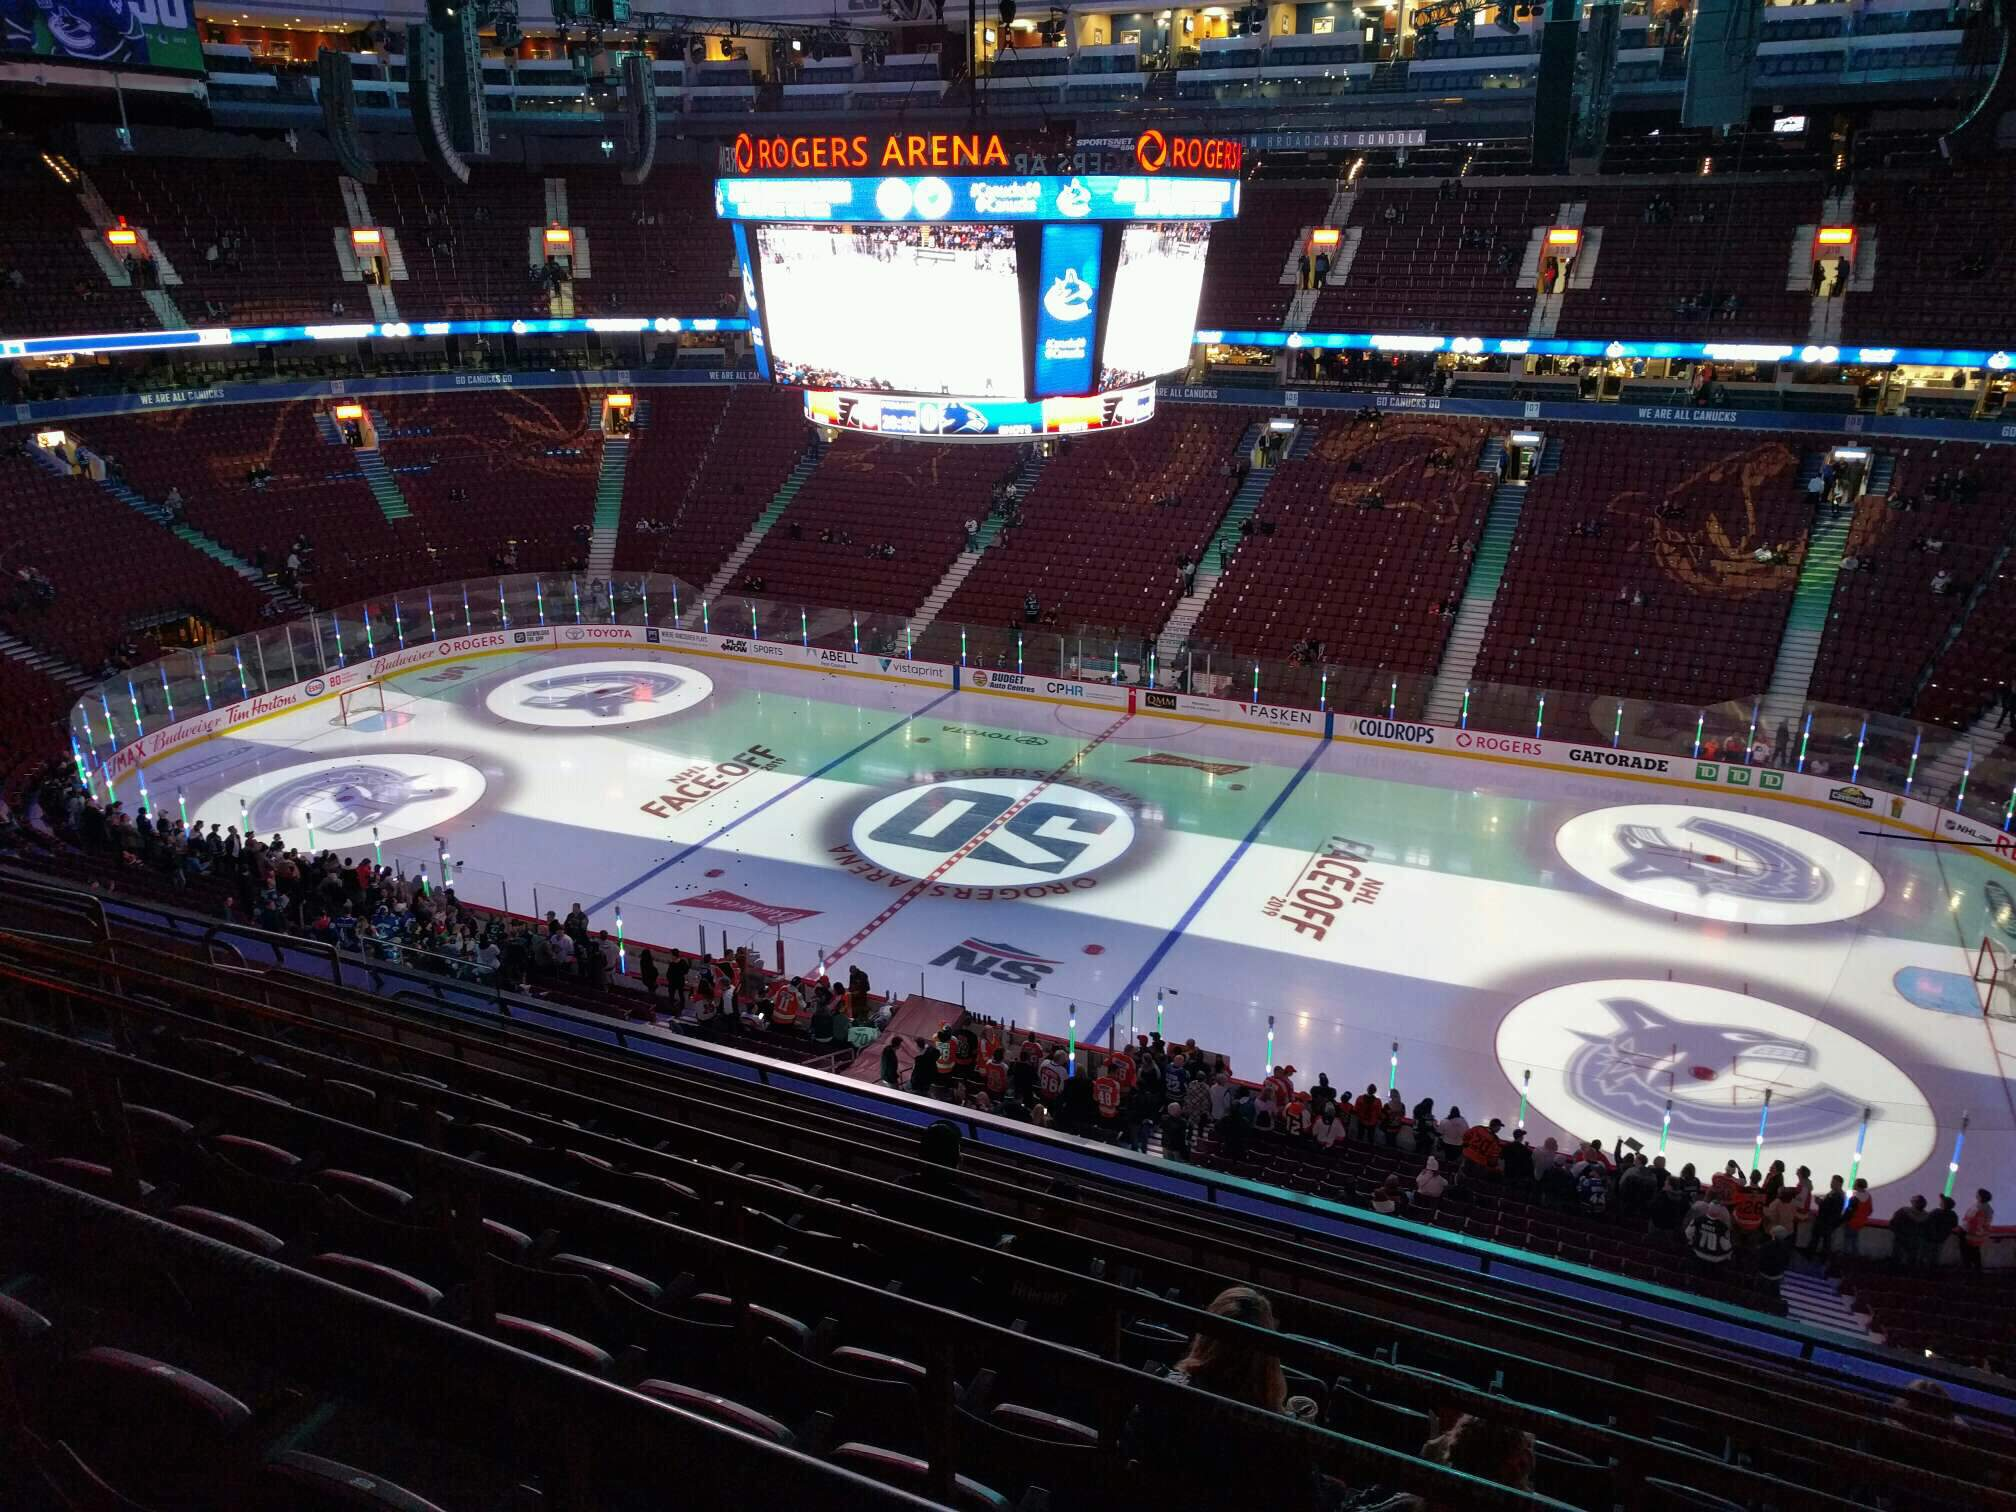 Rogers Arena Section 321 Row 9 Seat 105